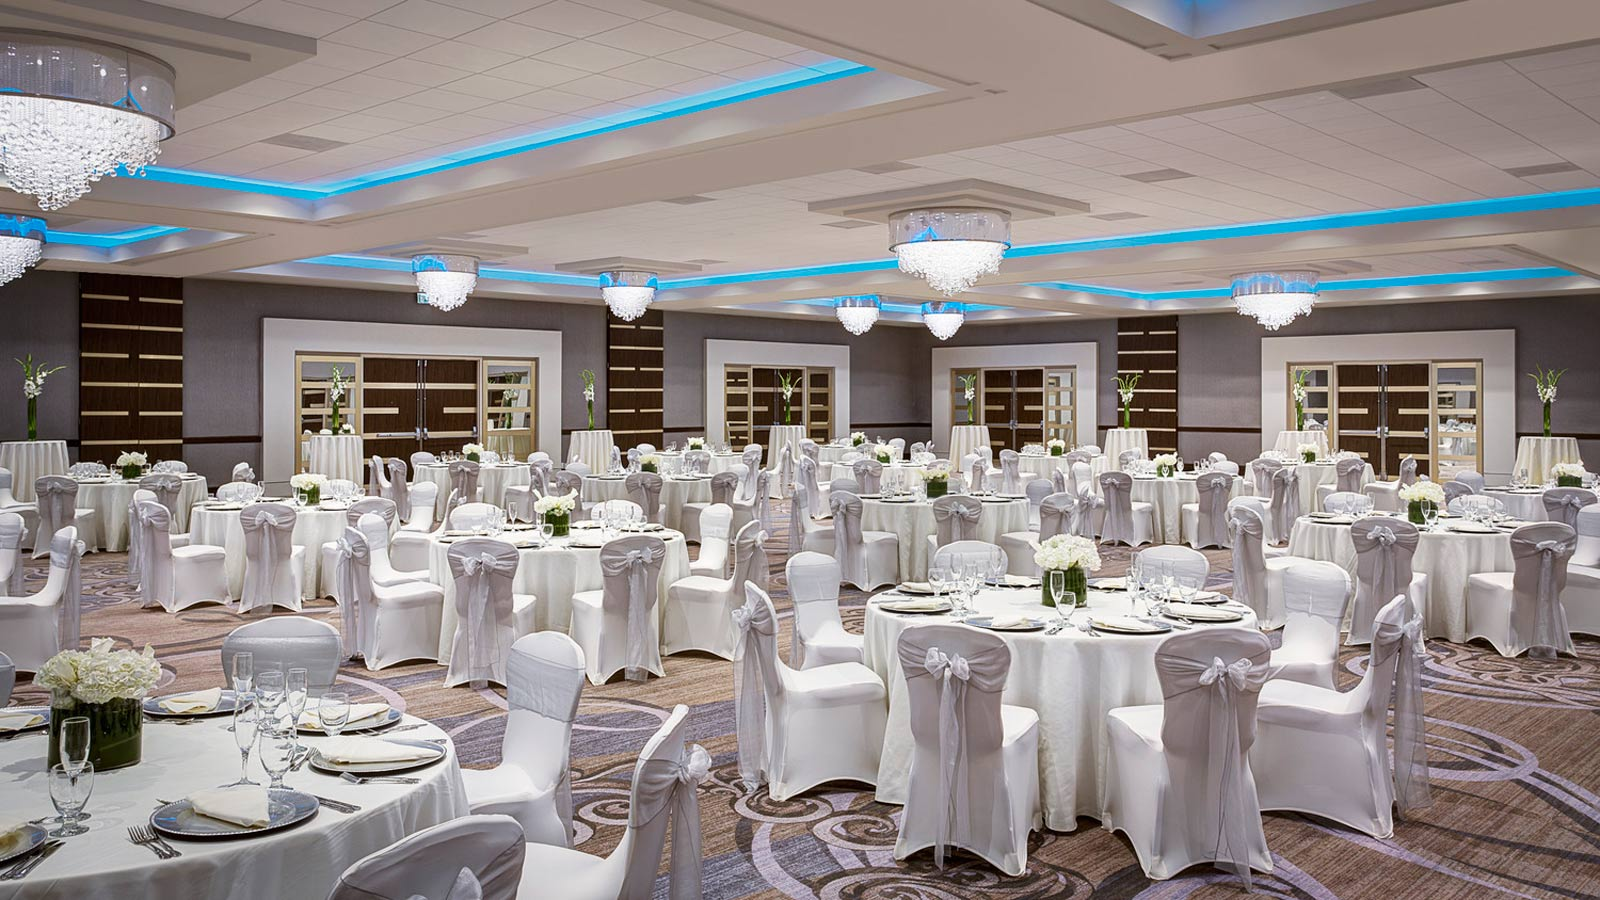 Wedding Venues in Houston - Reception